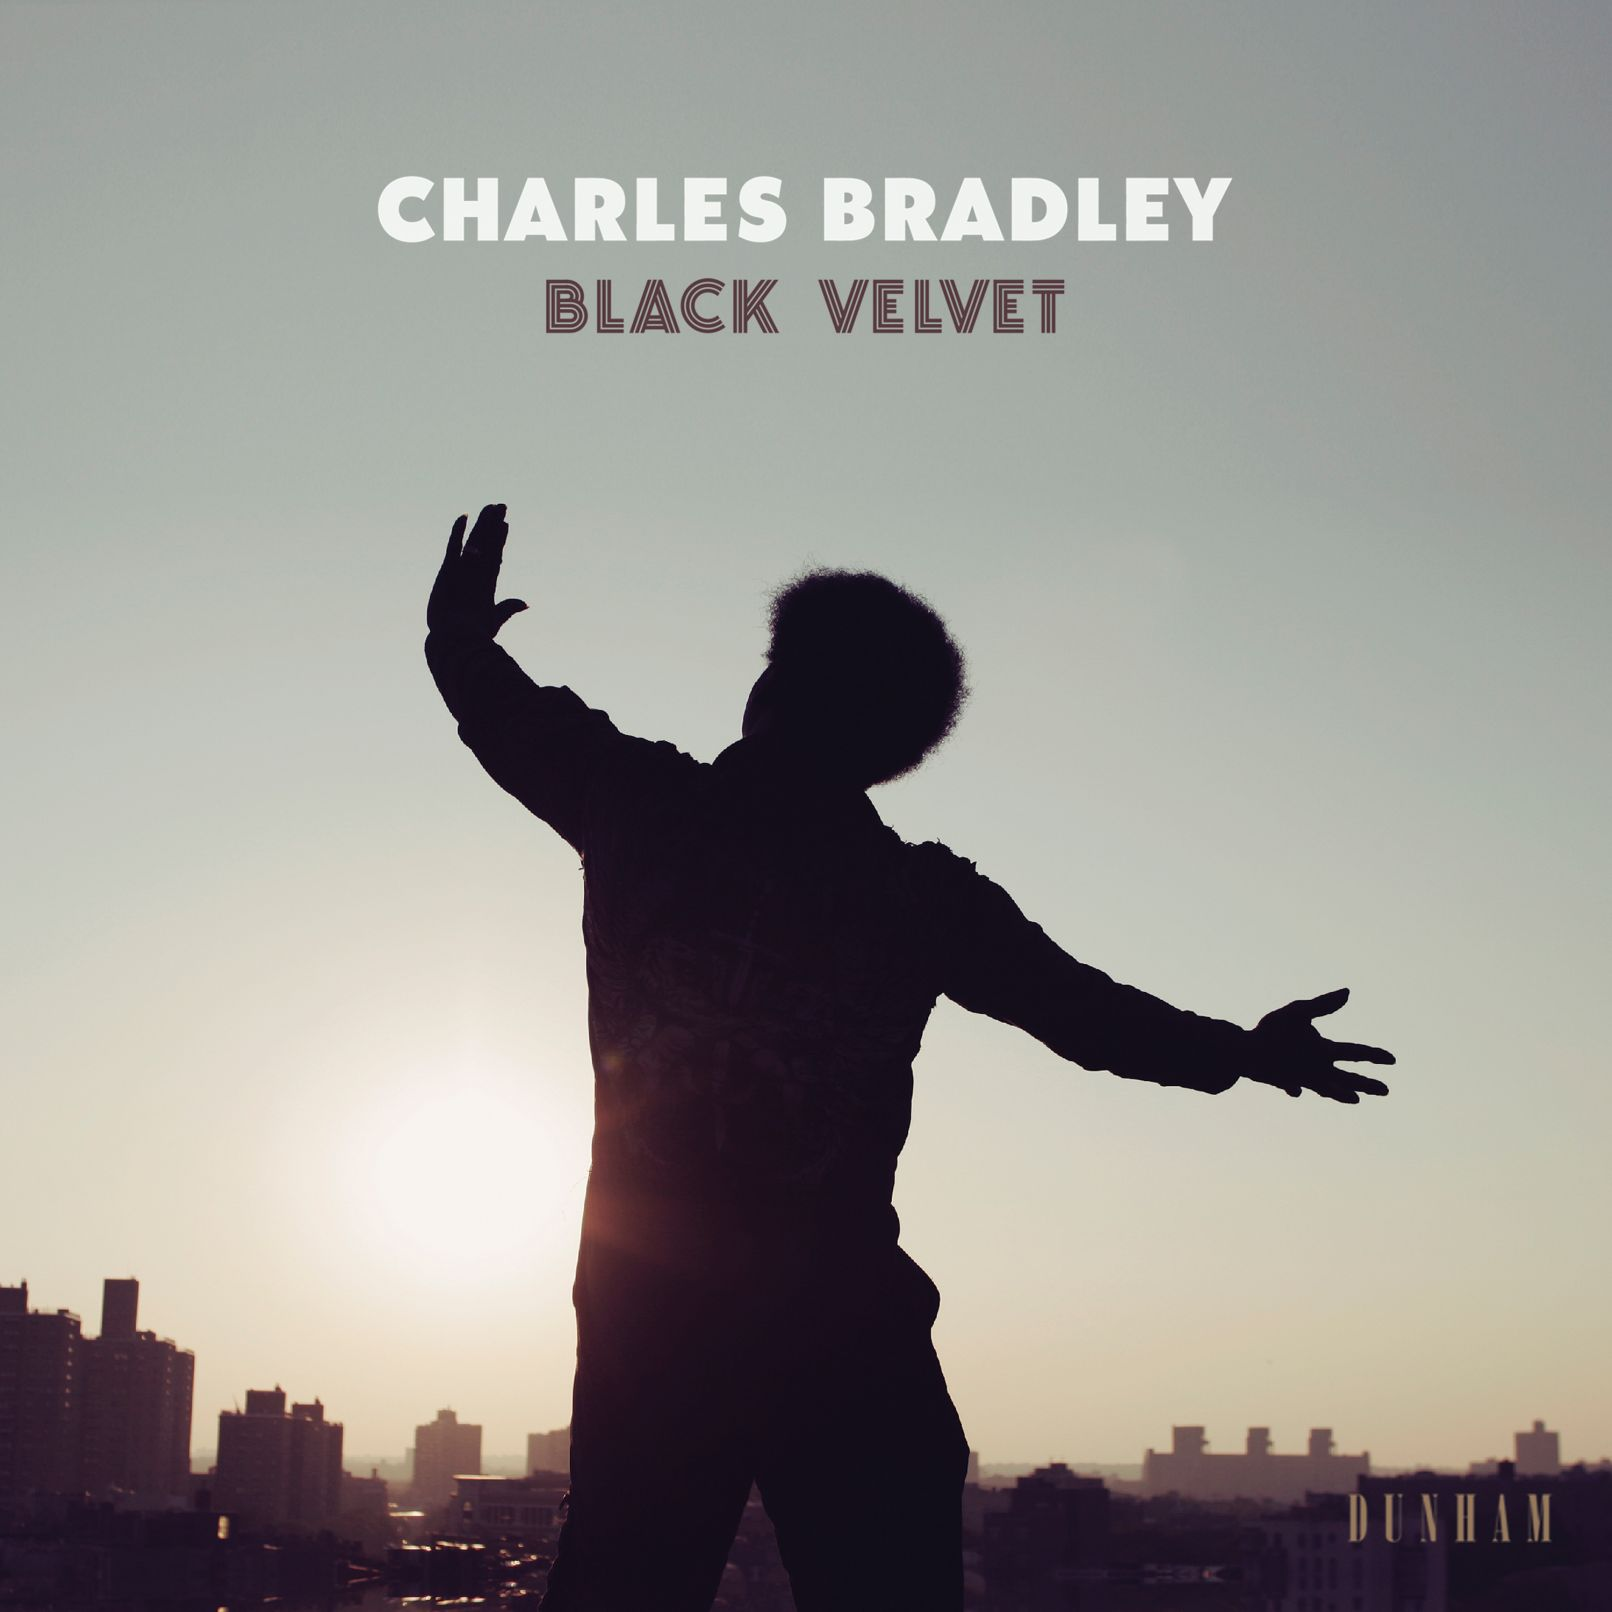 charles-bradley-black-velvet-cover-art1